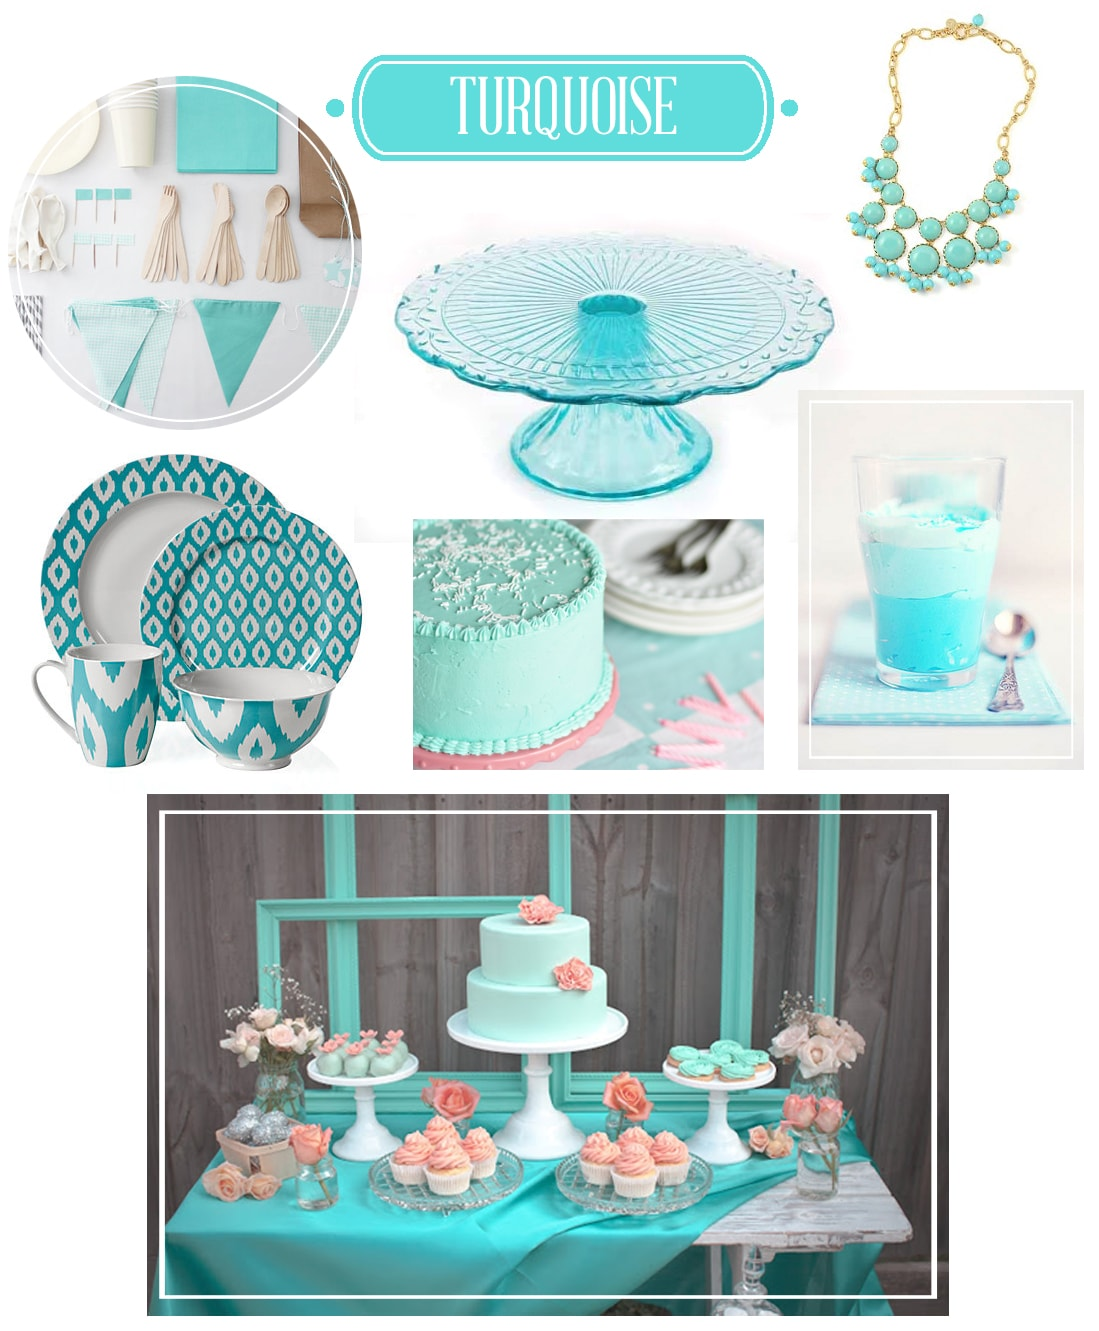 COLOR: For the love of Turquoise!